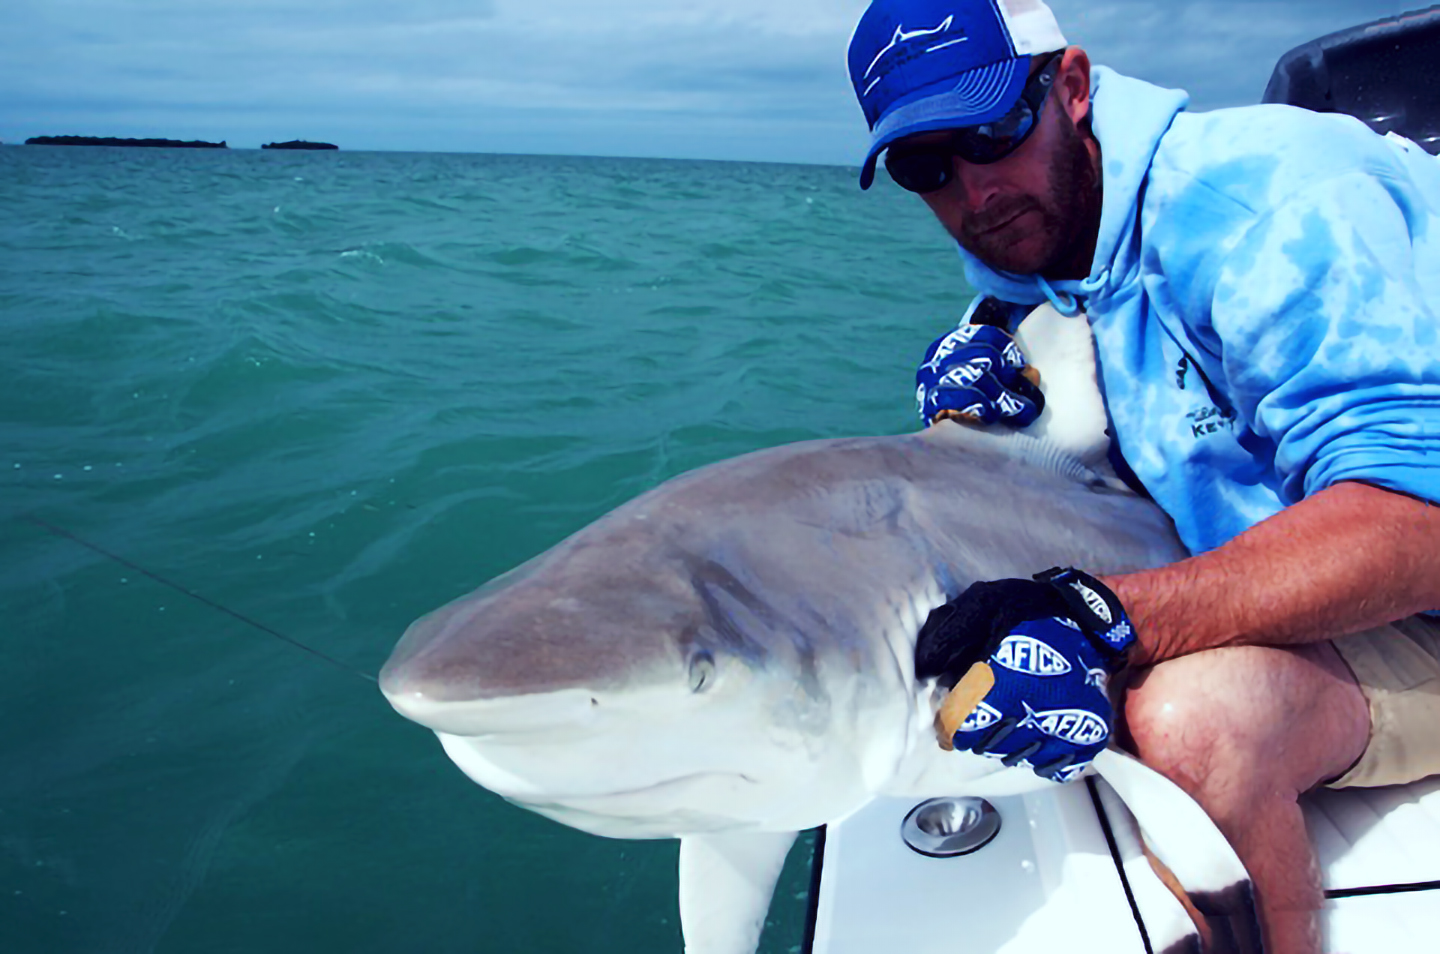 Image of a man with a Shark at the side of the boat in the Florida Keys